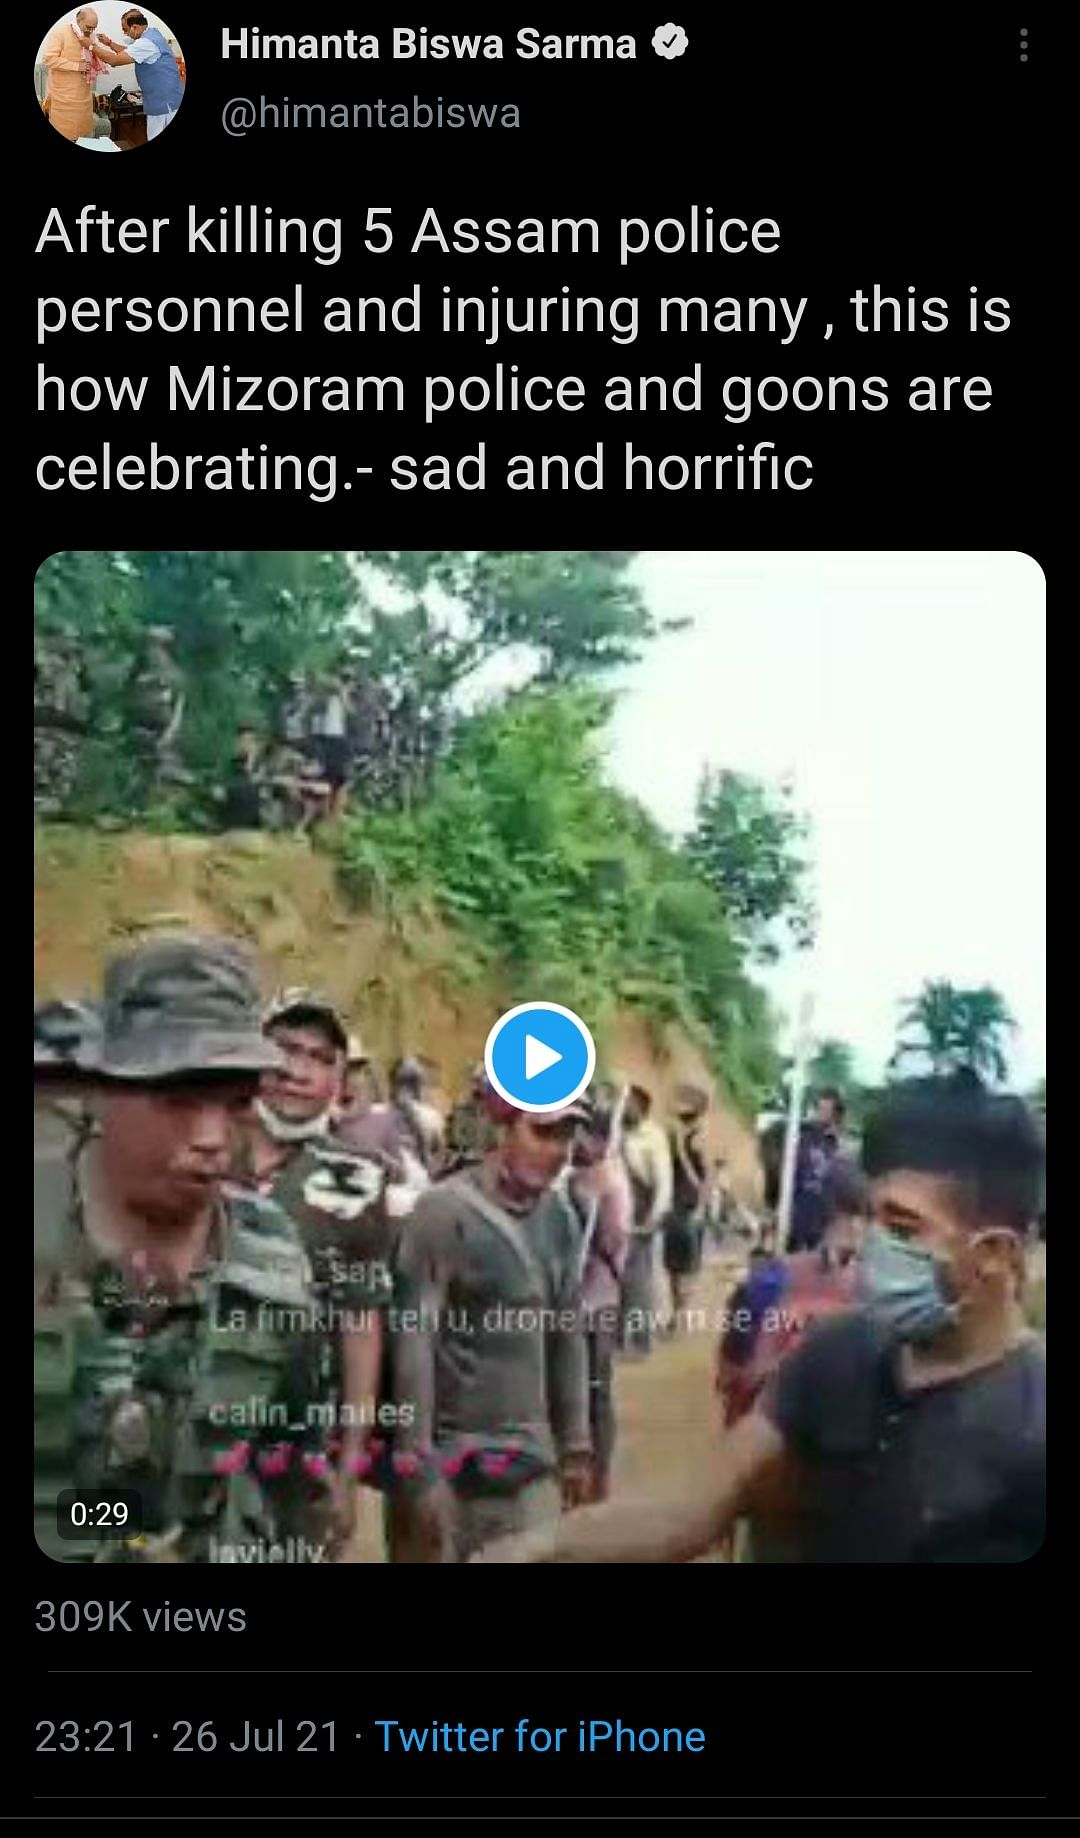 Assam-Mizoram Border Row: Videos To Twitter Spats, Why Himanta Raised the Pitch